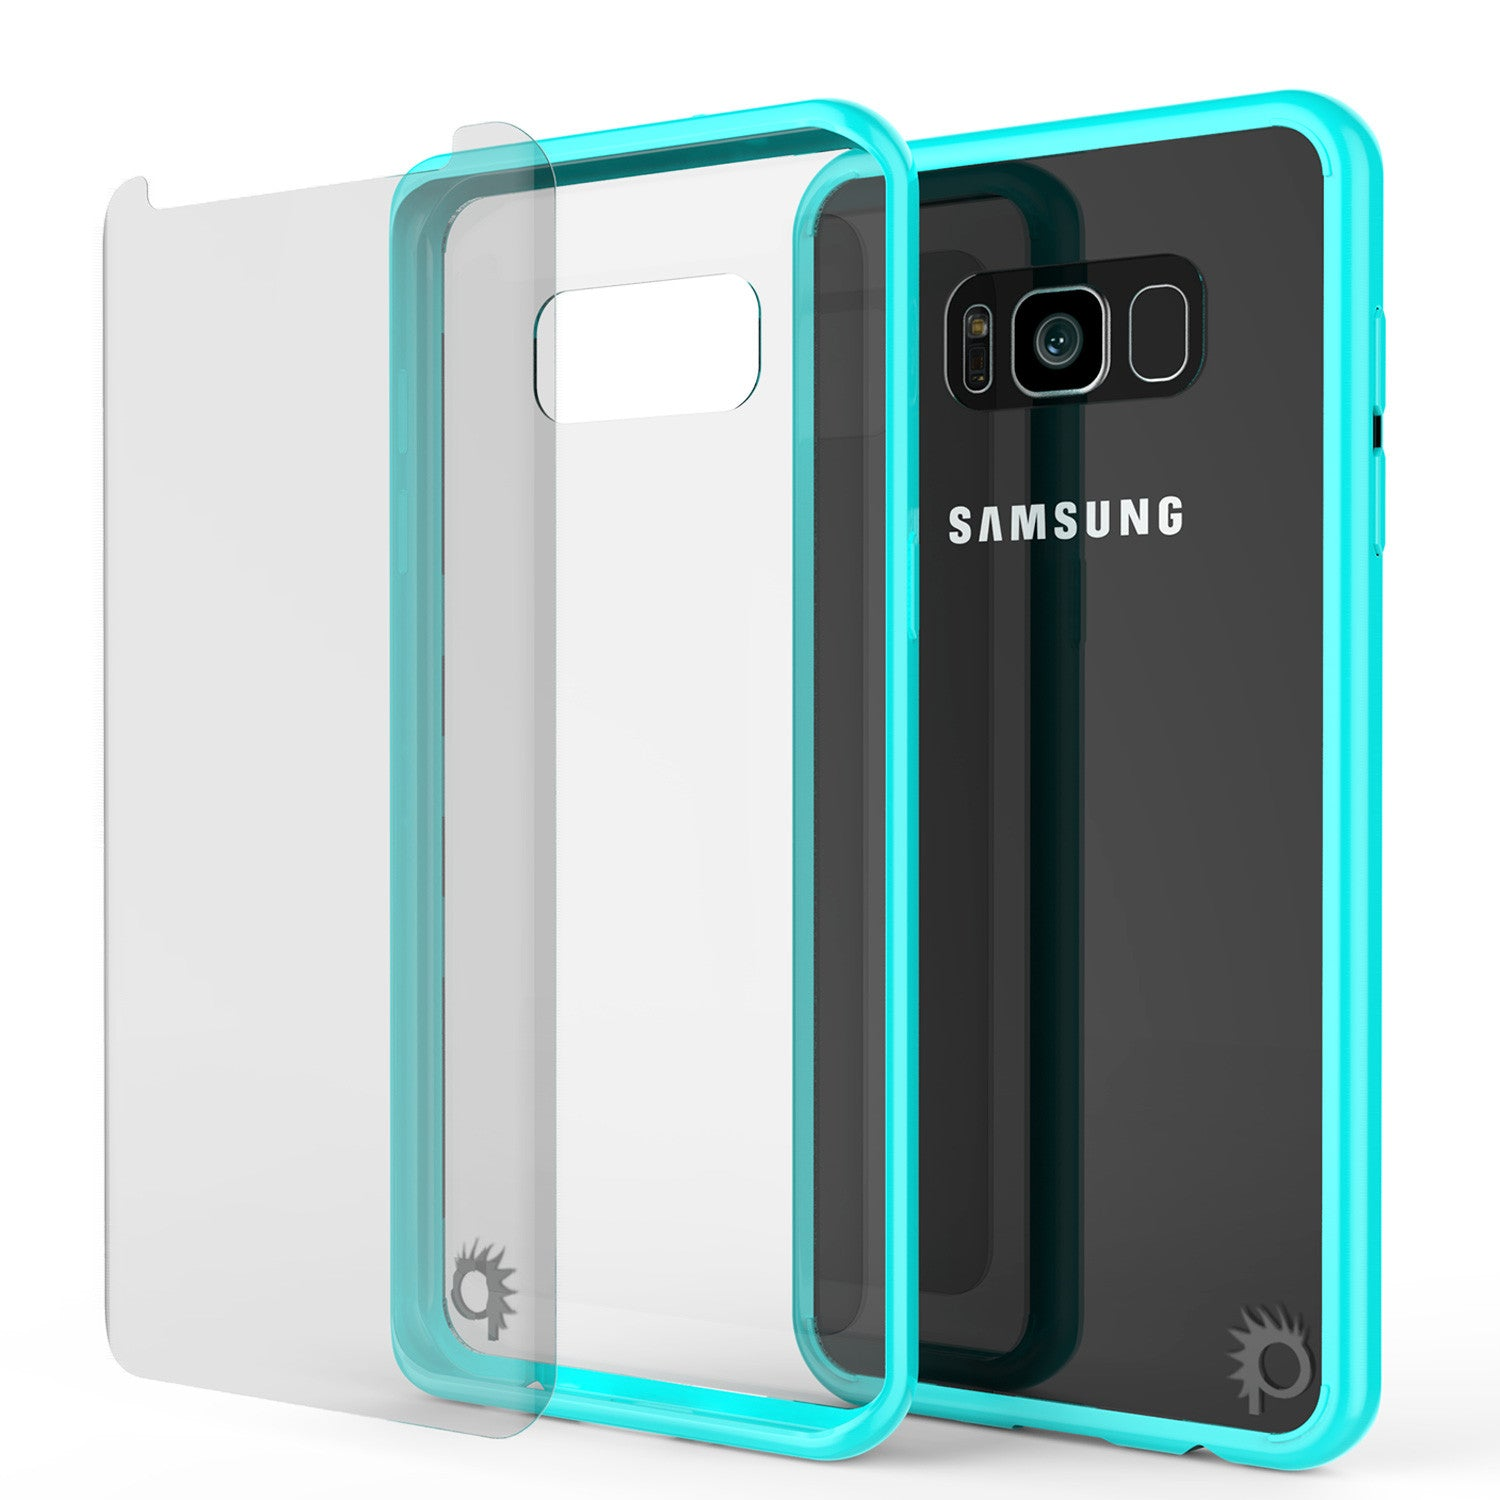 S8 Case Punkcase® LUCID 2.0 Teal Series w/ PUNK SHIELD Screen Protector | Ultra Fit